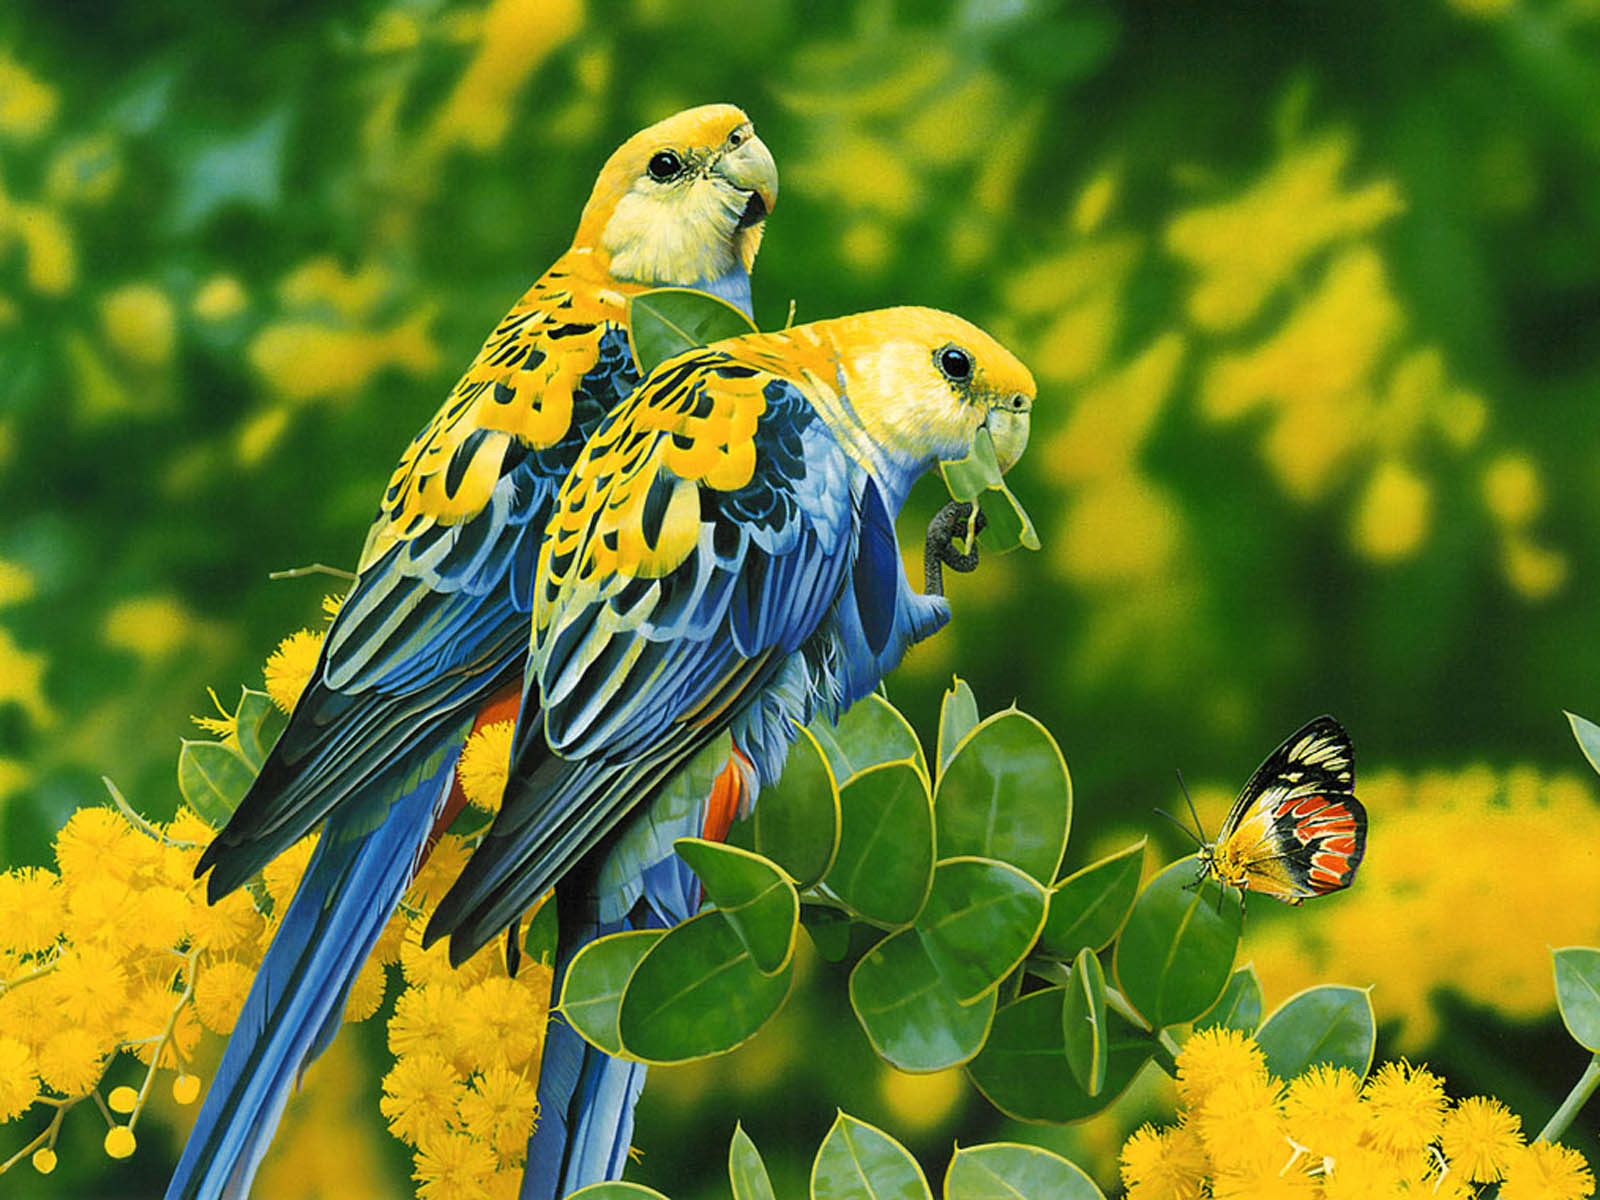 Free Download Gallery For Gt Love Bird Wallpaper 1600x1200 For Your Desktop Mobile Tablet Explore 73 Love Birds Wallpaper Free Wallpapers And Screensavers Birds Free Love Screensavers And Wallpaper